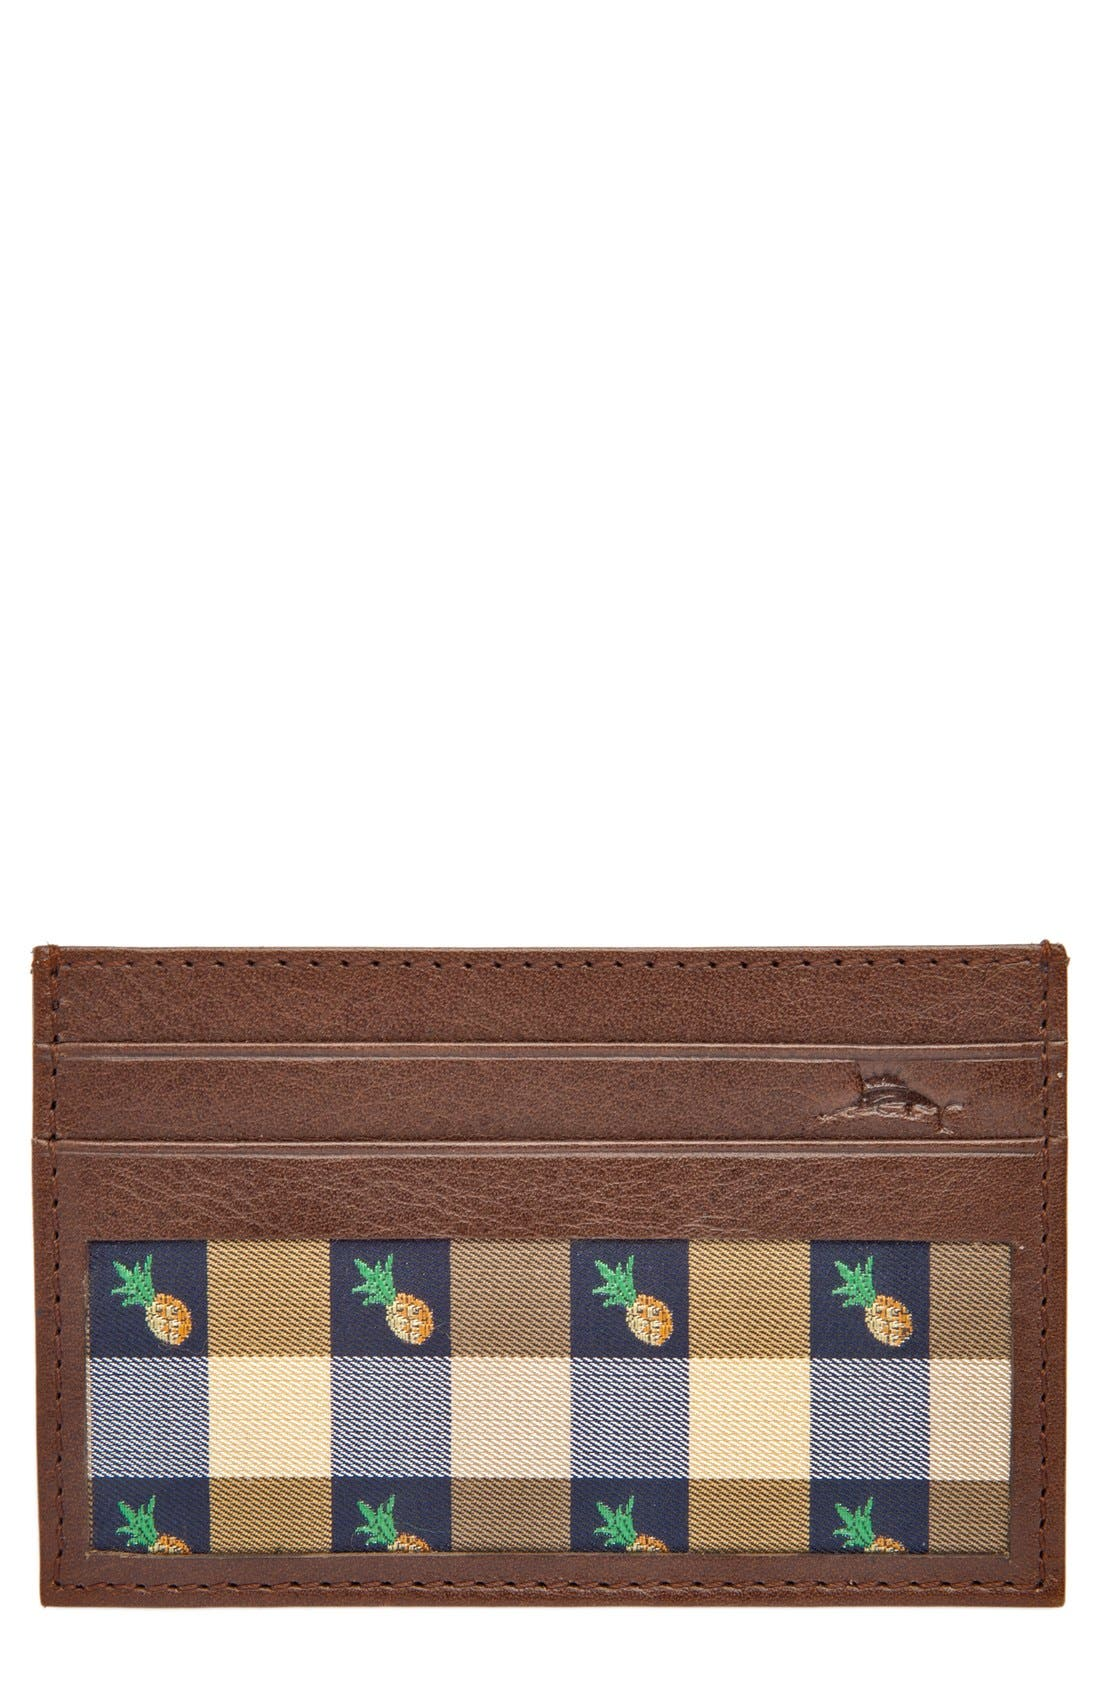 TOMMY BAHAMA Pineapple Card Case